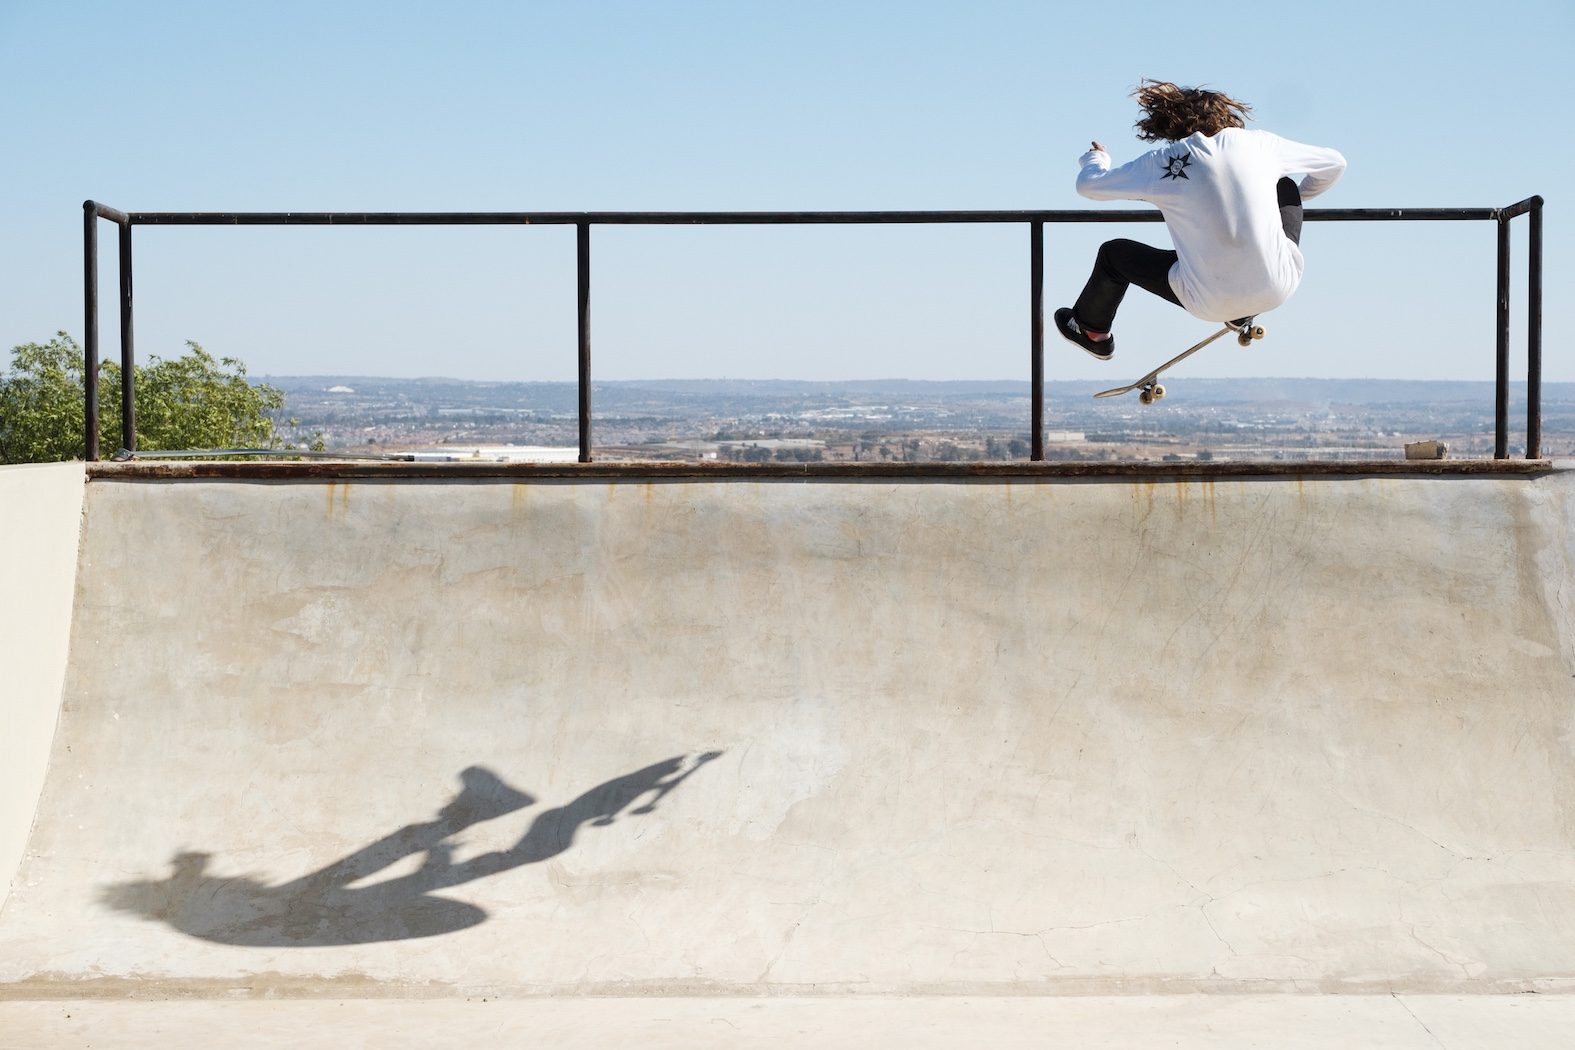 Brandon Valjalo talks skateboarding and his future in the sport